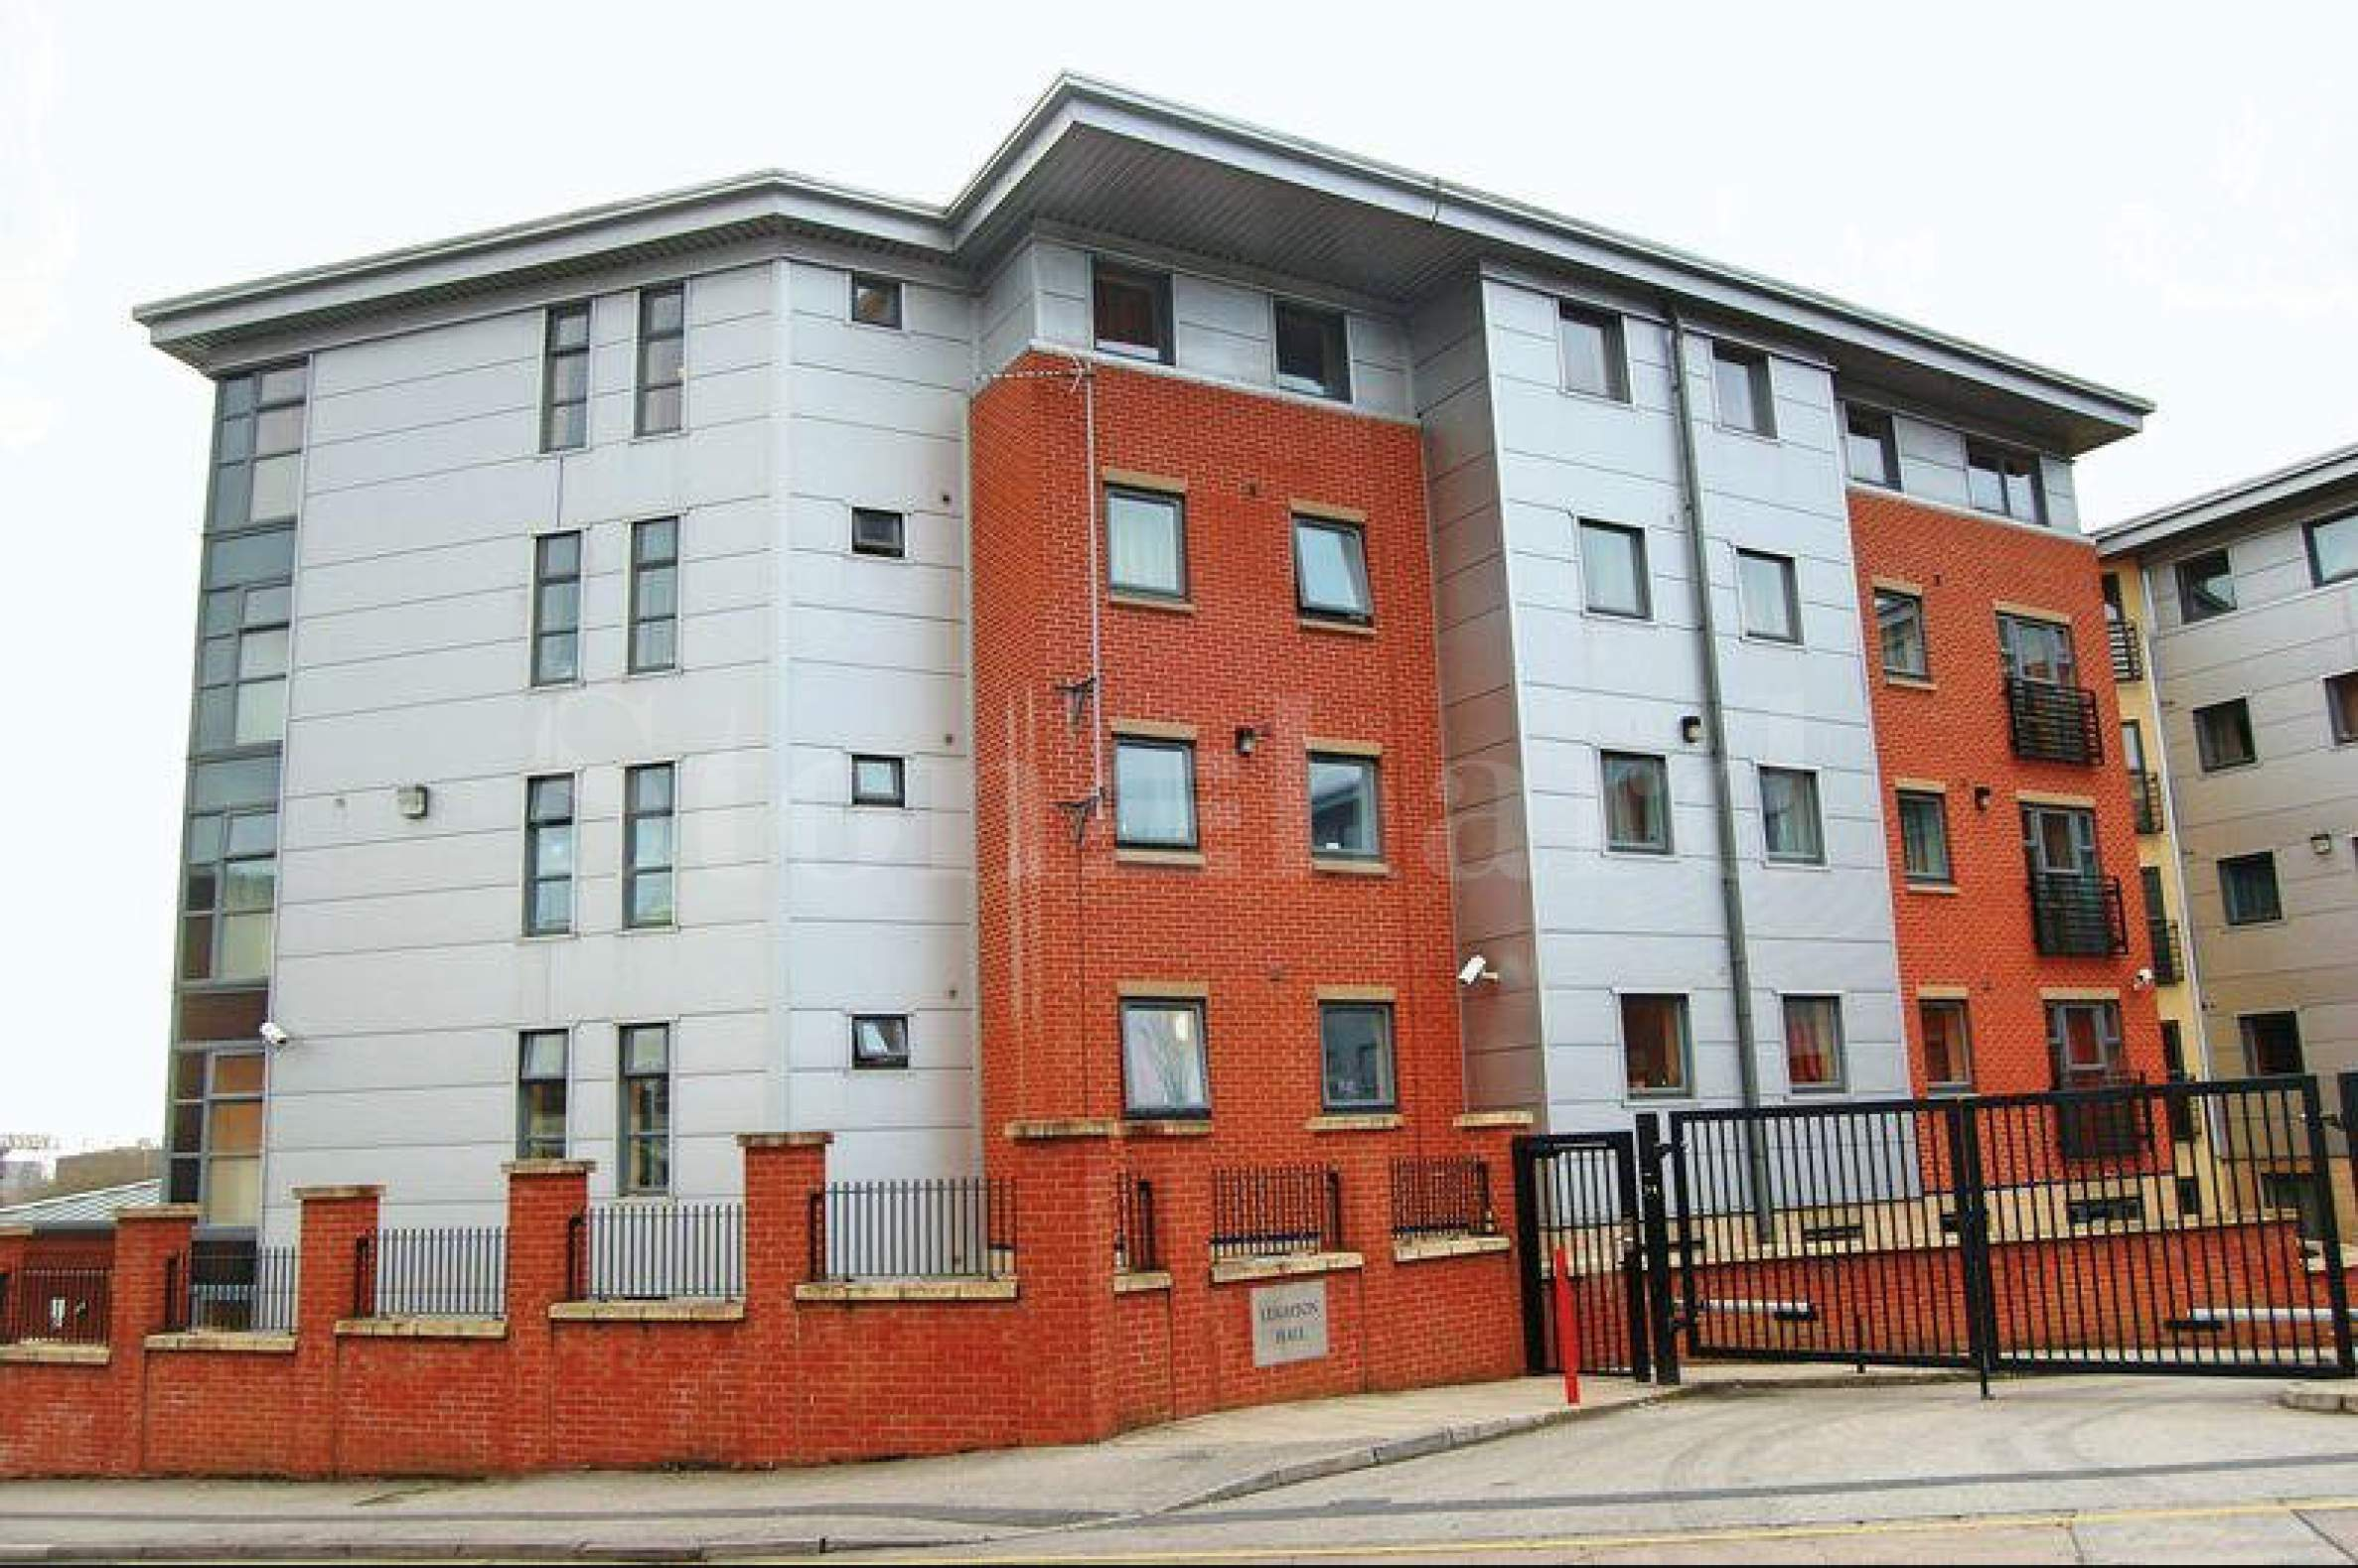 Operational student accommodation with 7% assuared net return2 - Stonehard